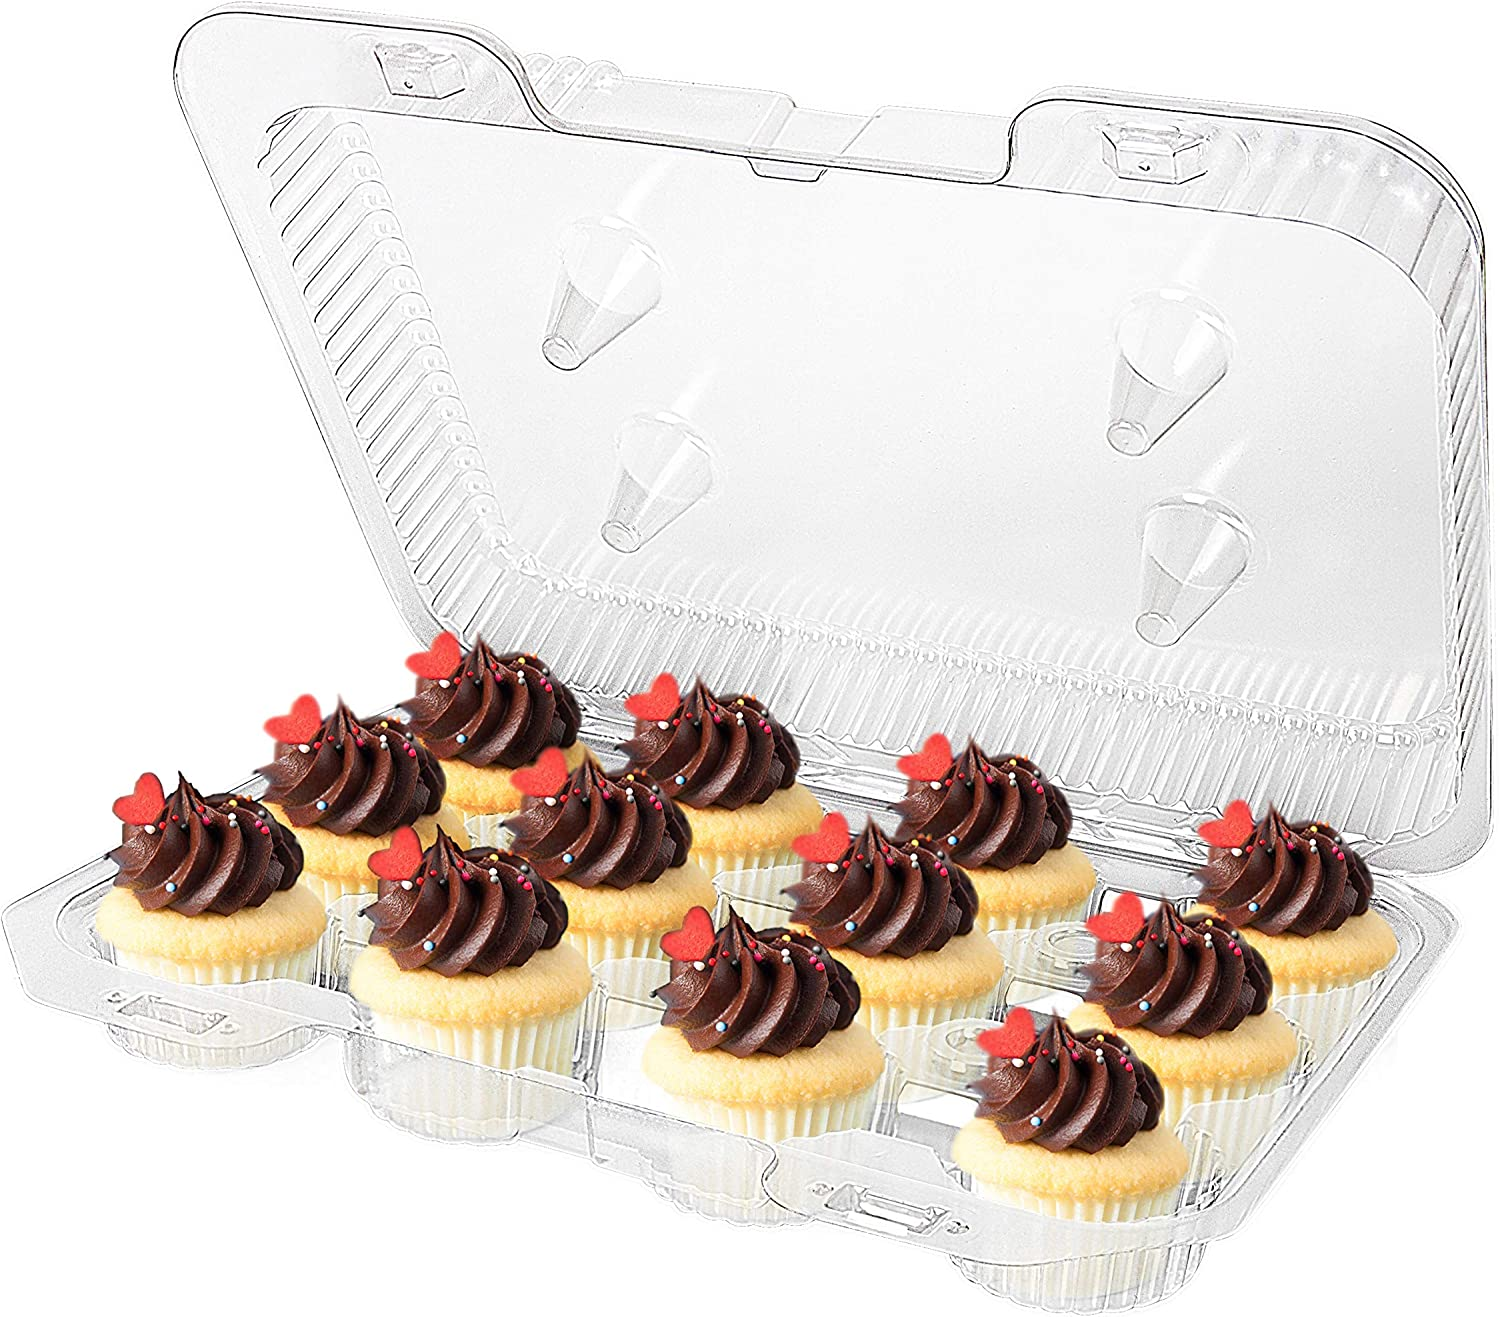 Mini Cupcake Containers - 12-Compartment Containers (40 Count) - Plastic Mini Cupcake Containers - Disposable Trays for Small Cupcakes & Muffins - Hinged Lock Cupcake Clamshell - Mini Cupcake Storage